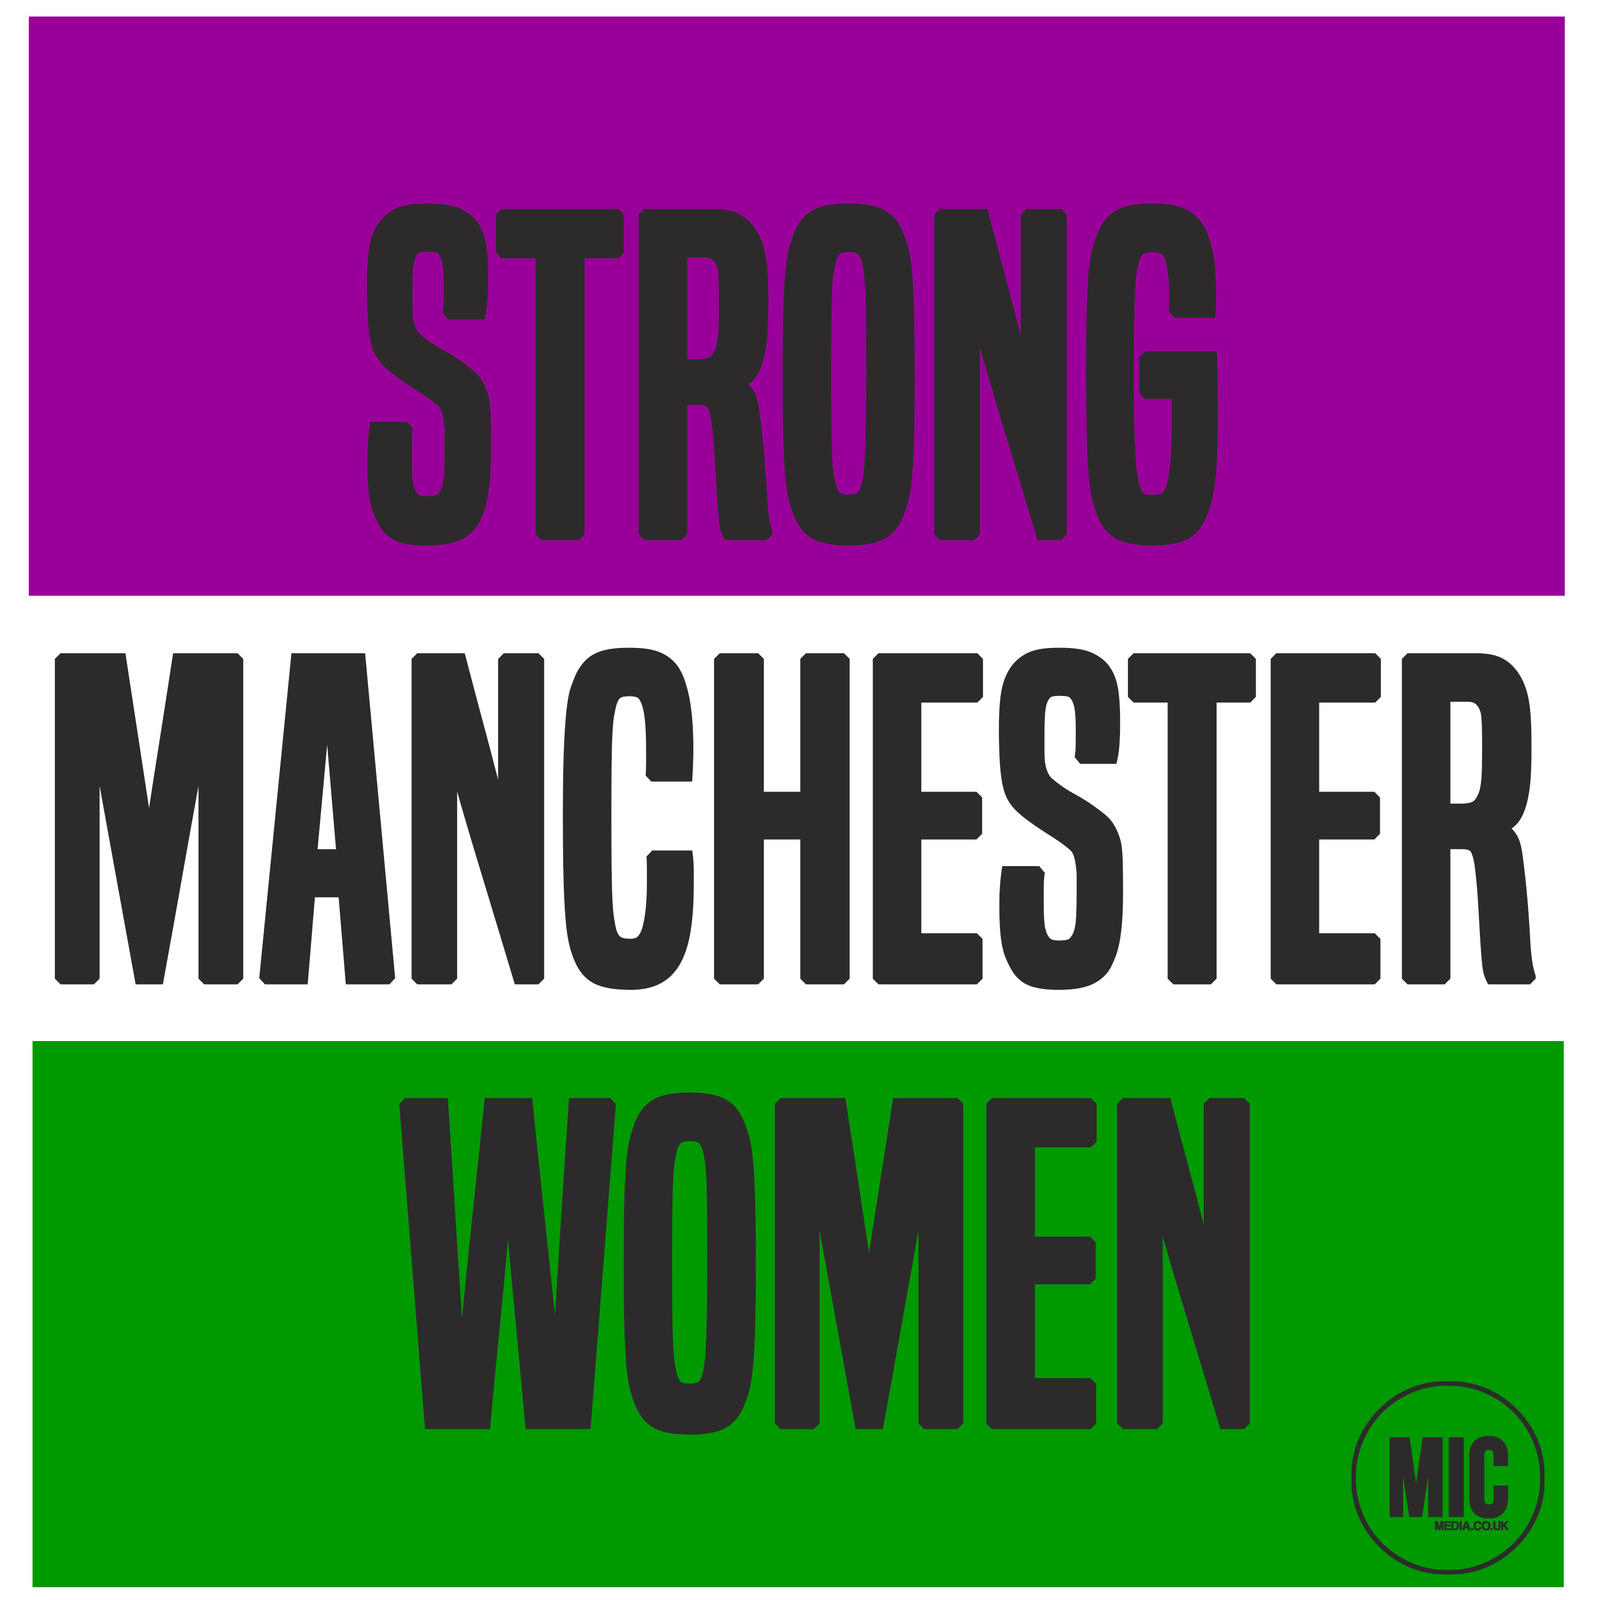 Strong Manchester Women Podcast  - coming soon